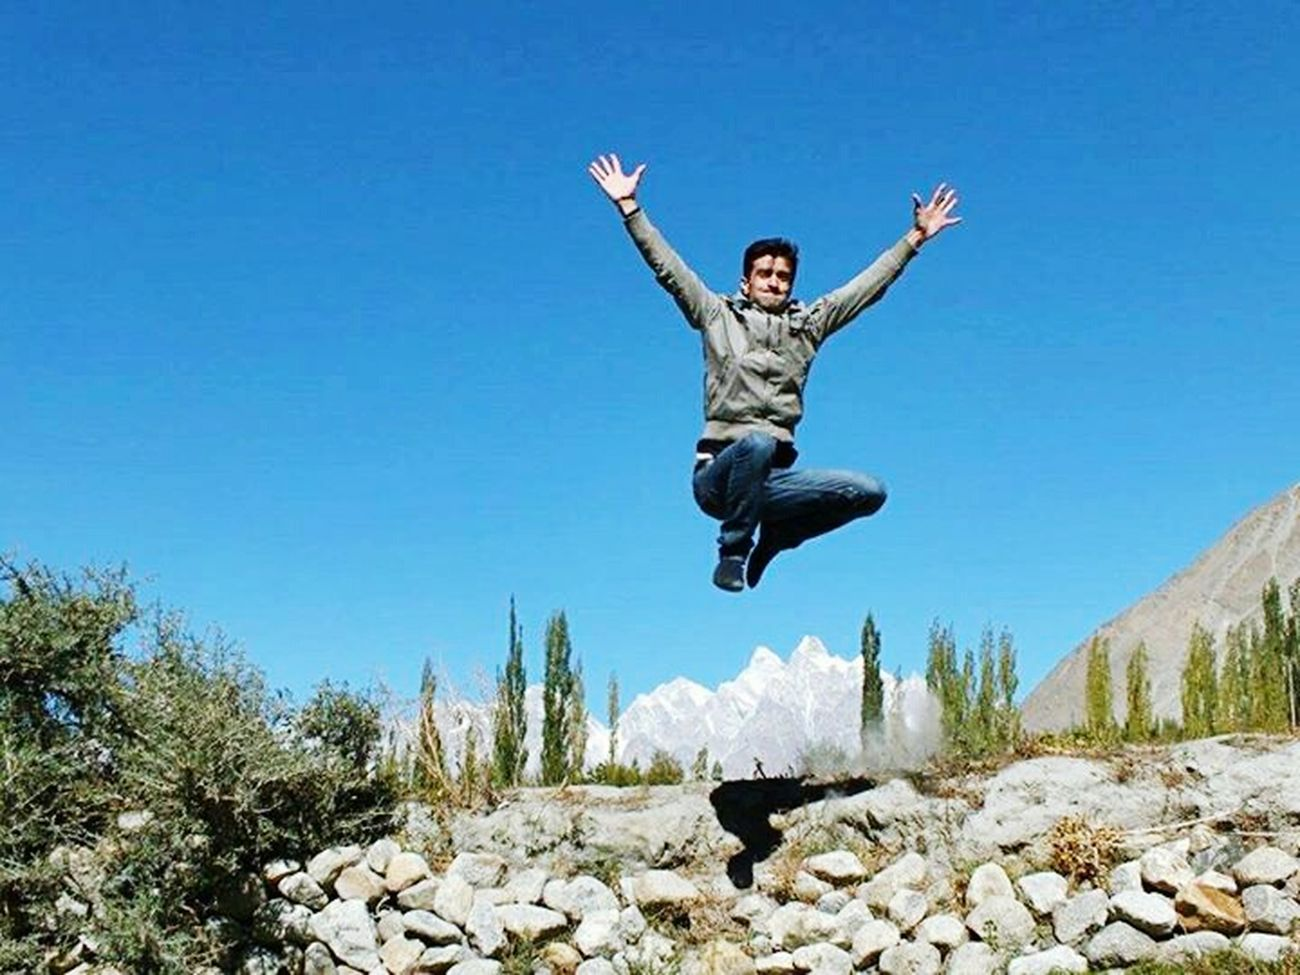 Landscape_photography Hunza Peaks Jumpshot Jump Pictureoftheday Mountain View Khyber Beauty Of Pakistan Sunny Day